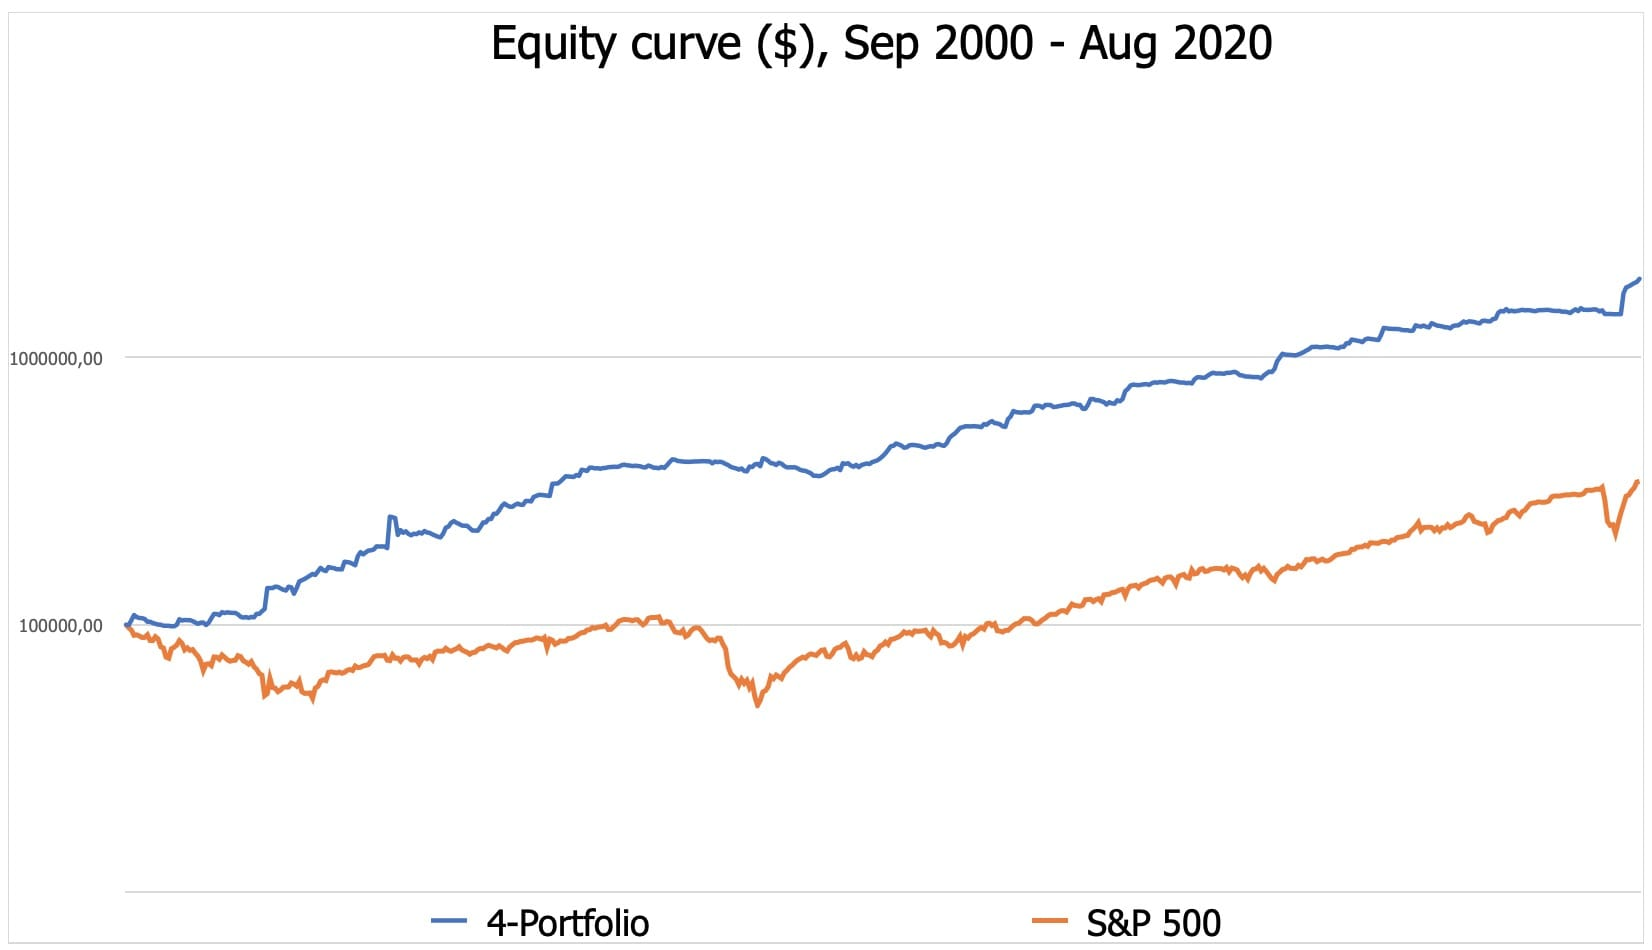 Backtest equity curve 2000 - 2020